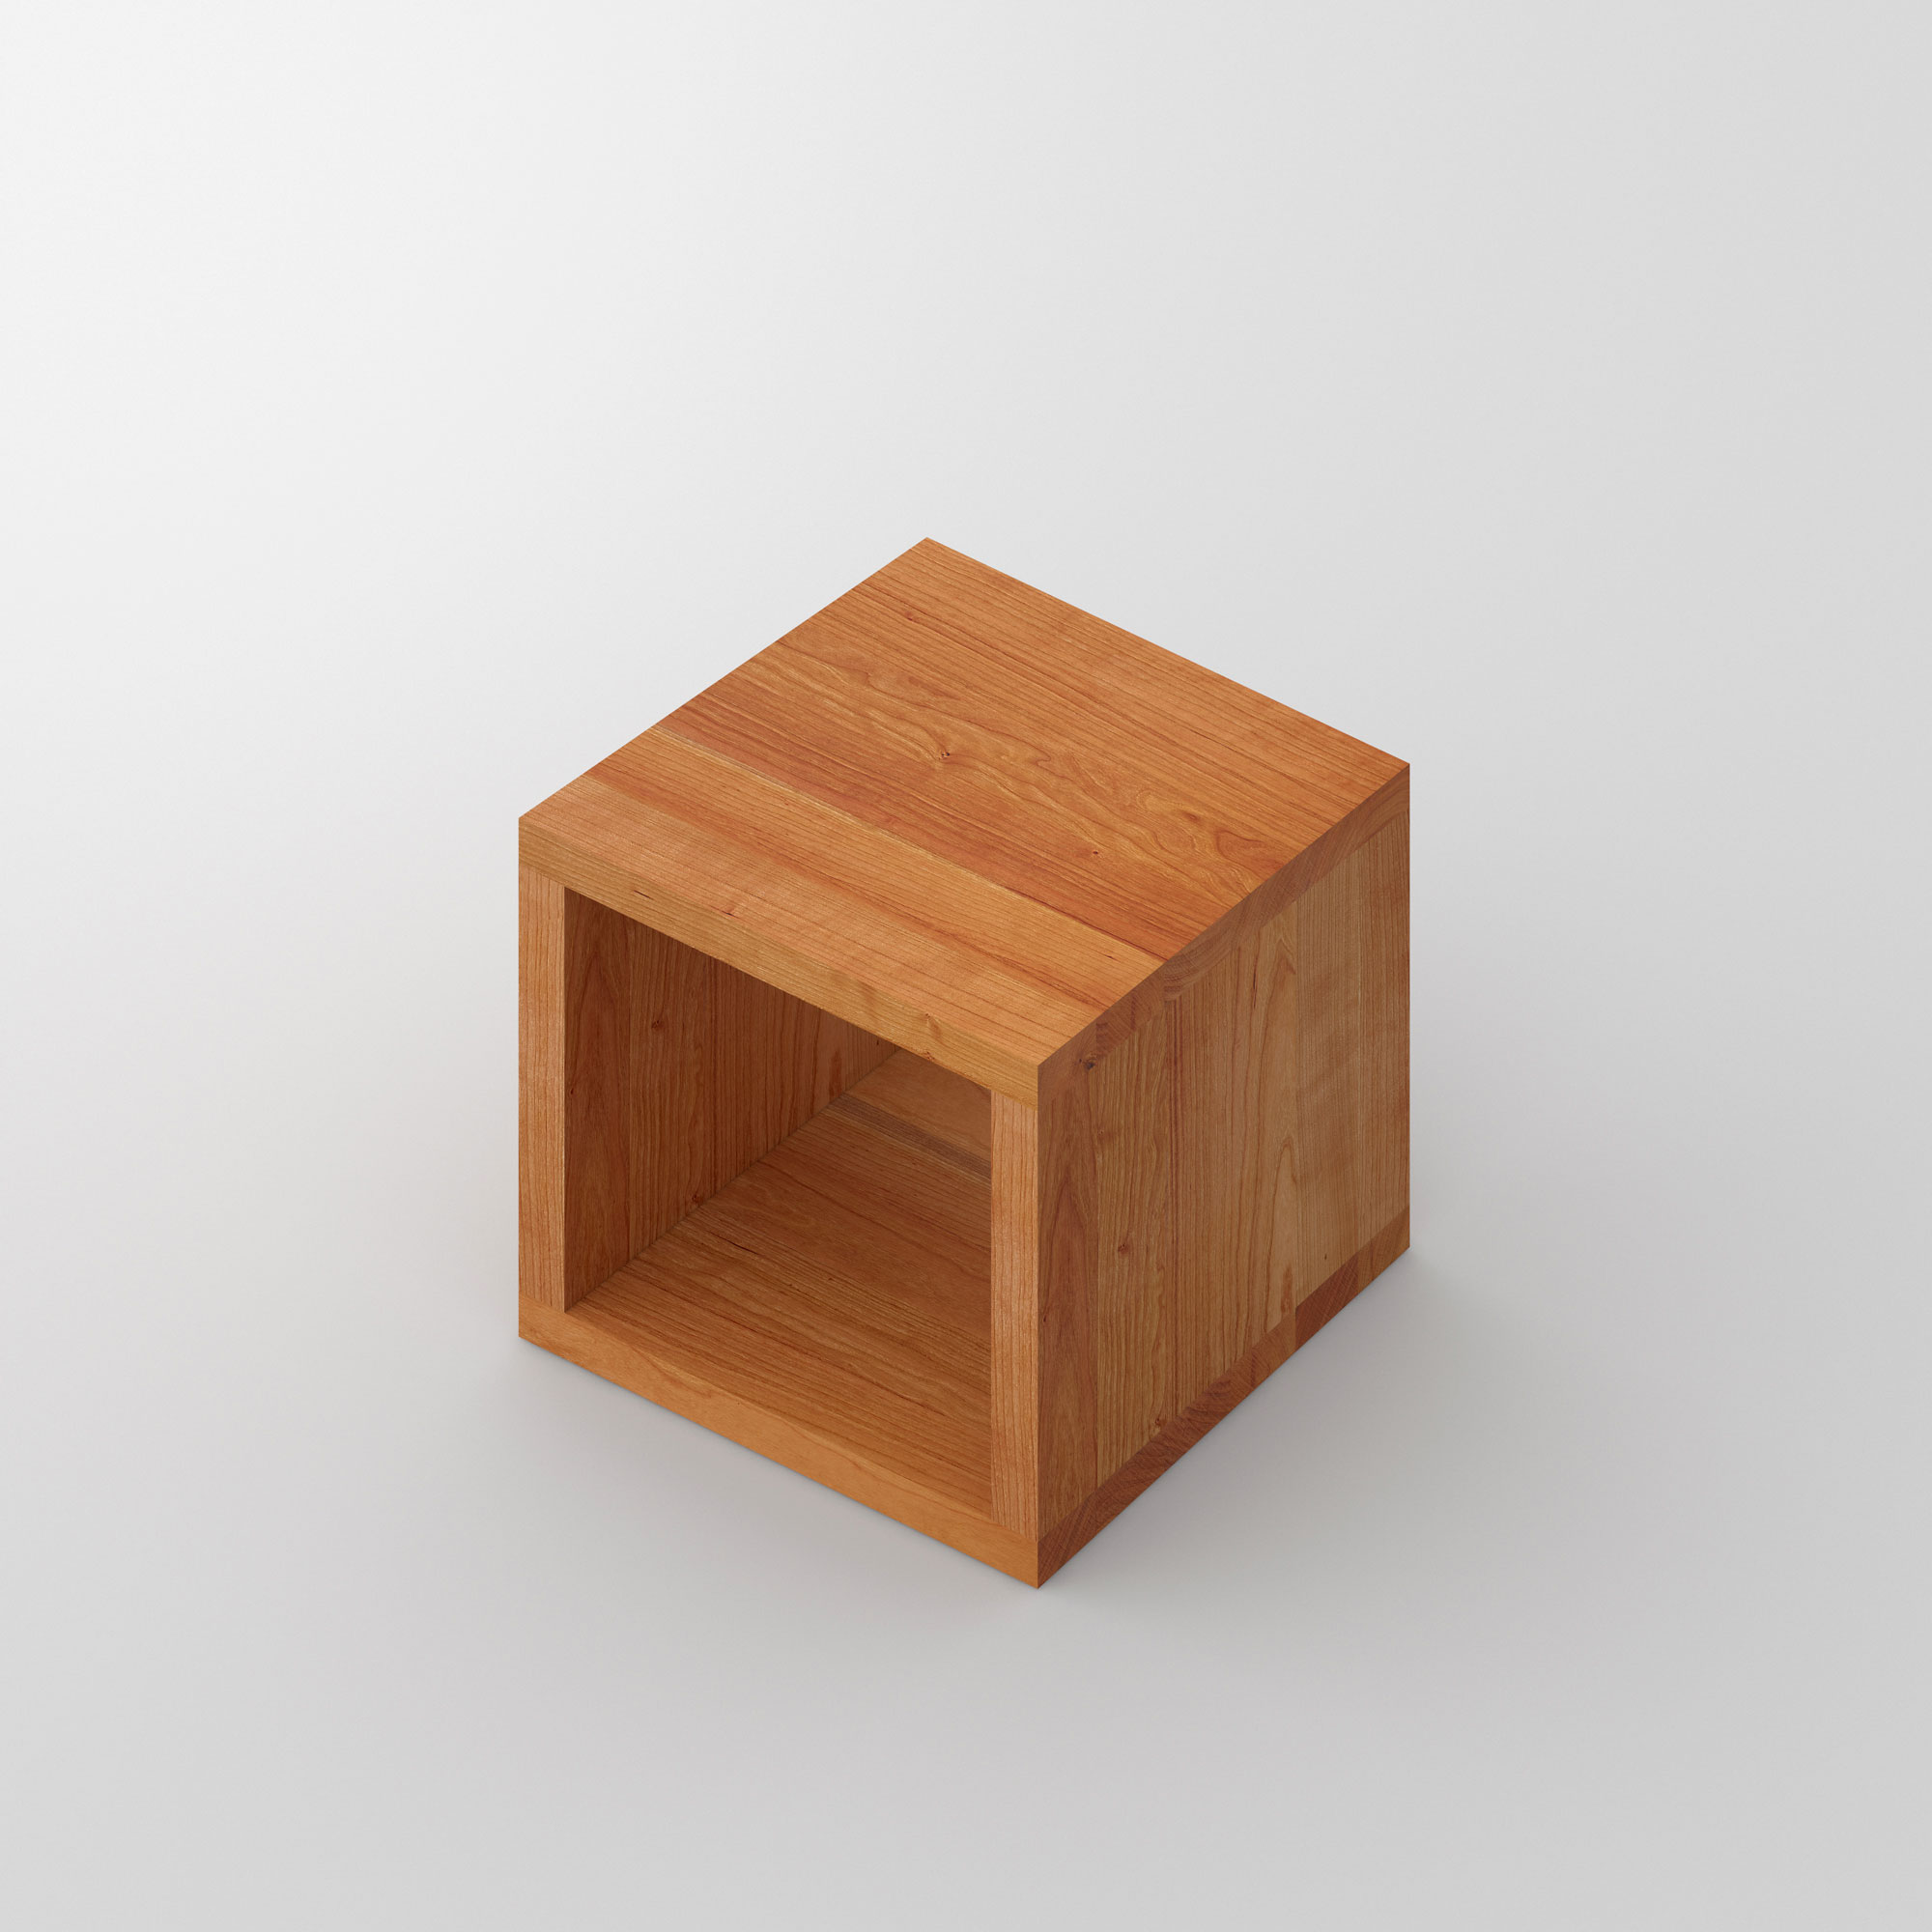 Multifunctional Stool MENA B 4 custom made in solid wood by vitamin design